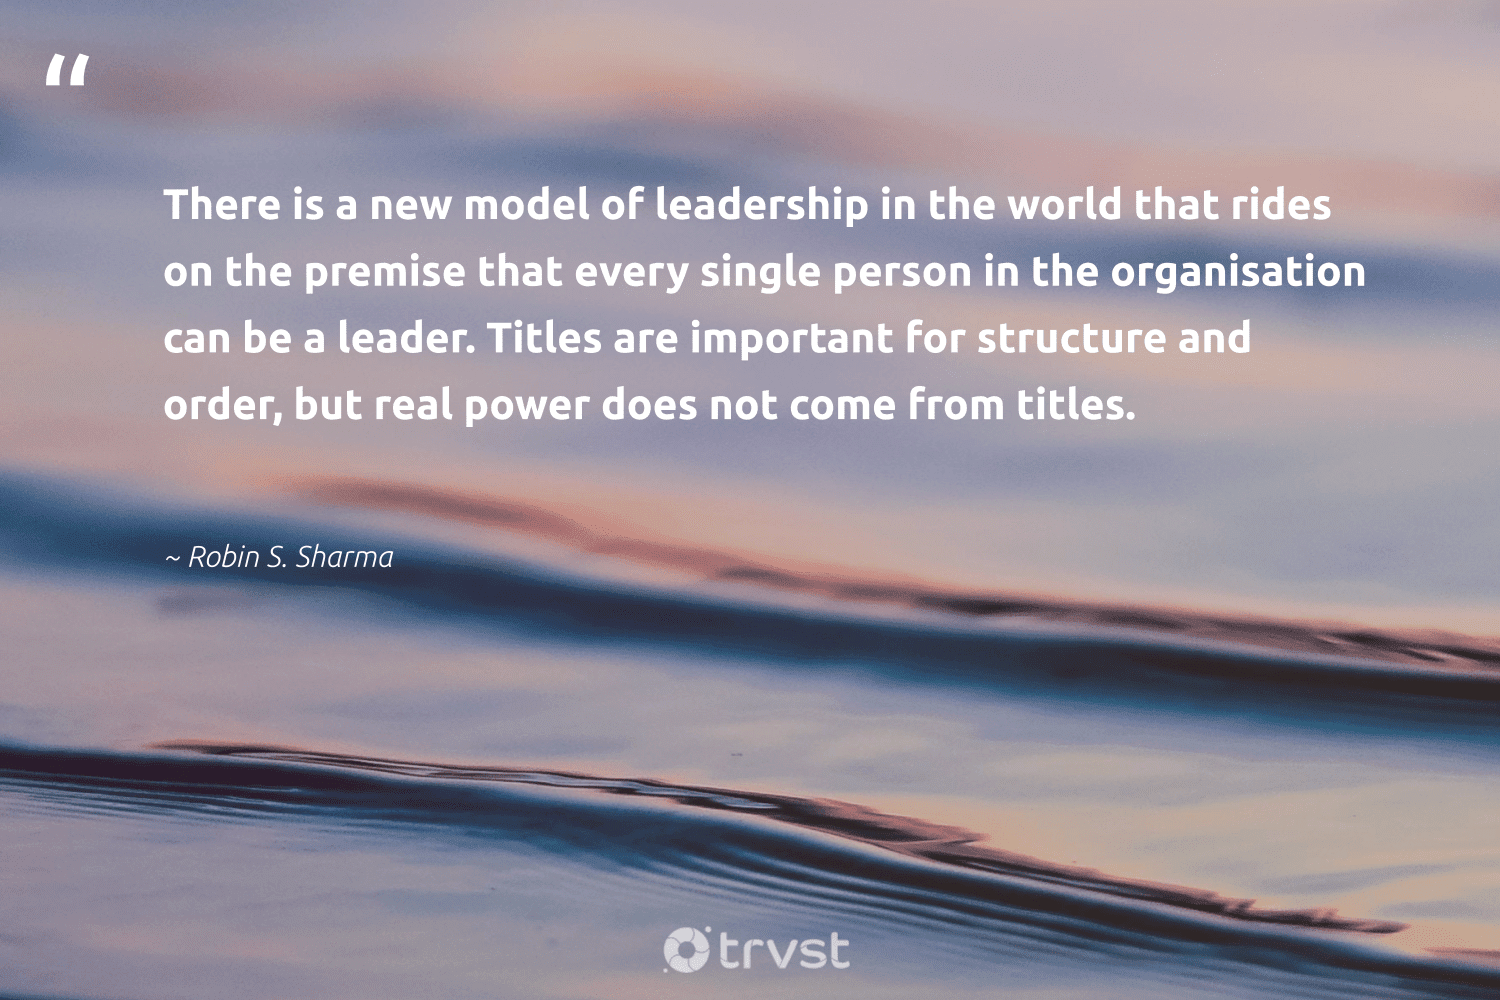 """""""There is a new model of leadership in the world that rides on the premise that every single person in the organisation can be a leader. Titles are important for structure and order, but real power does not come from titles.""""  - Robin S. Sharma #trvst #quotes #leadership #leadershipskills #begreat #softskills #ecoconscious #leadershipdevelopment #futureofwork #nevergiveup #dotherightthing #leadershipqualities"""